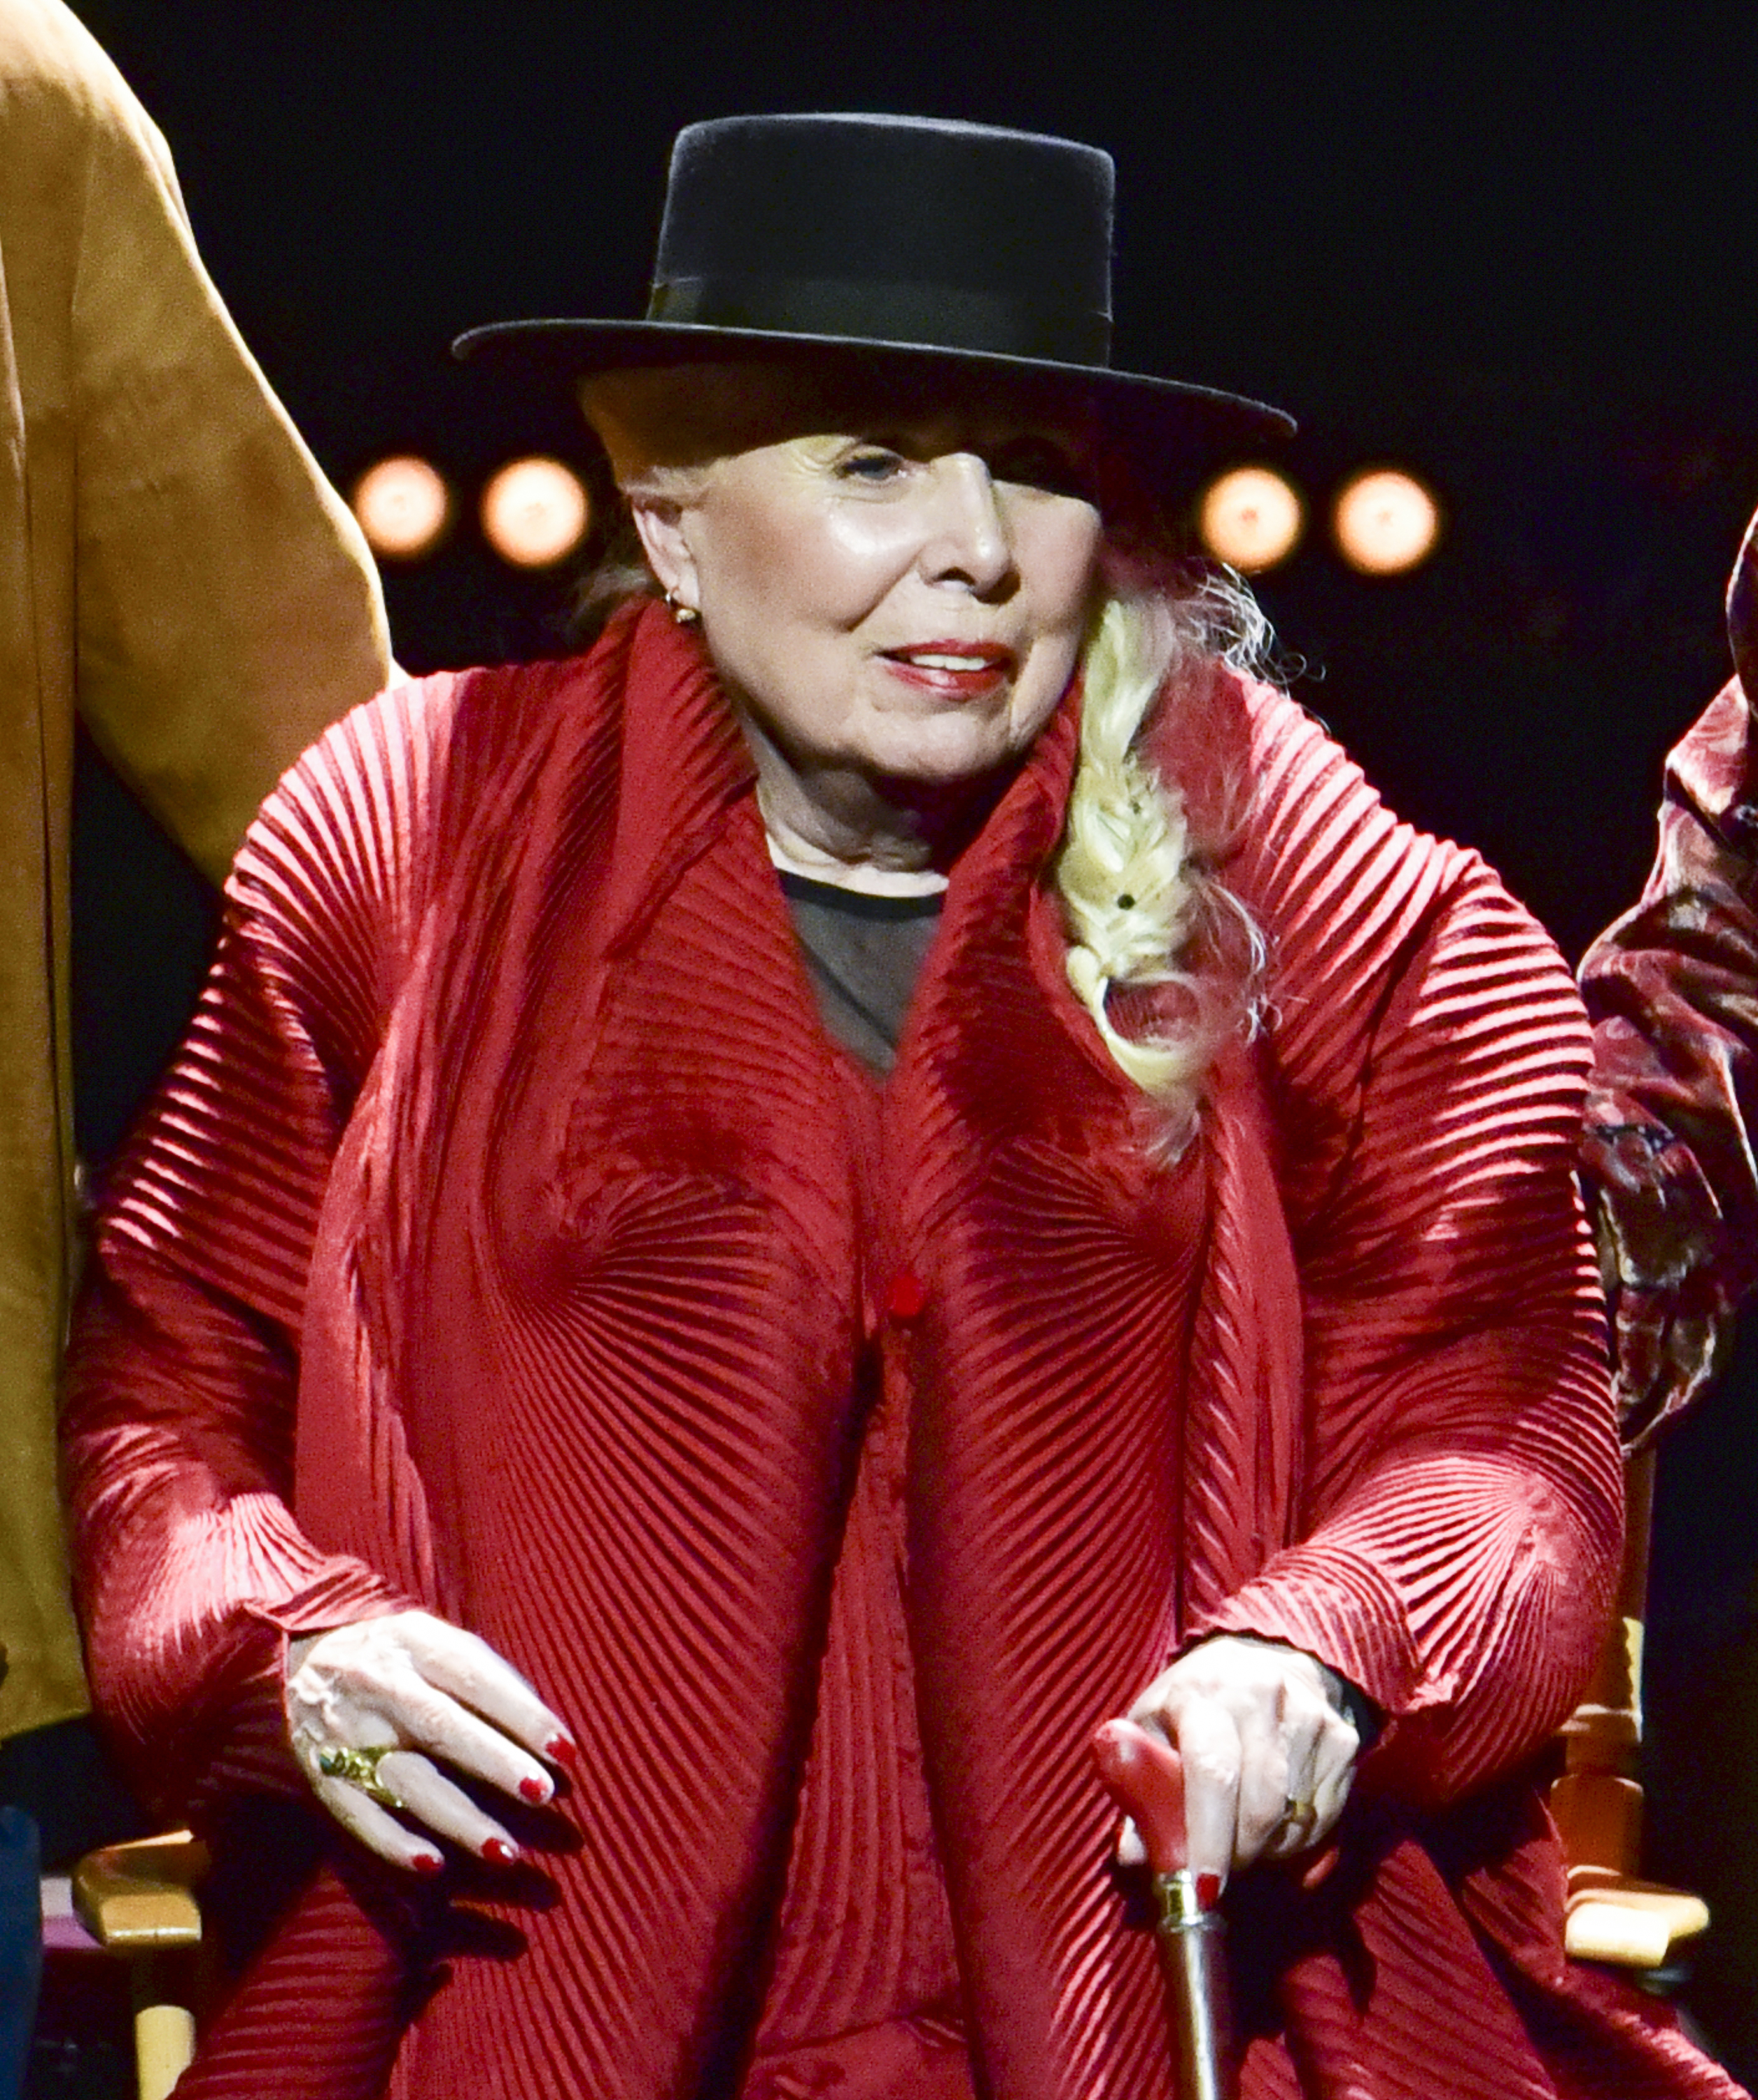 Joni Mitchell gave fans the ultimate gift on her birthday. She graced them with her presence